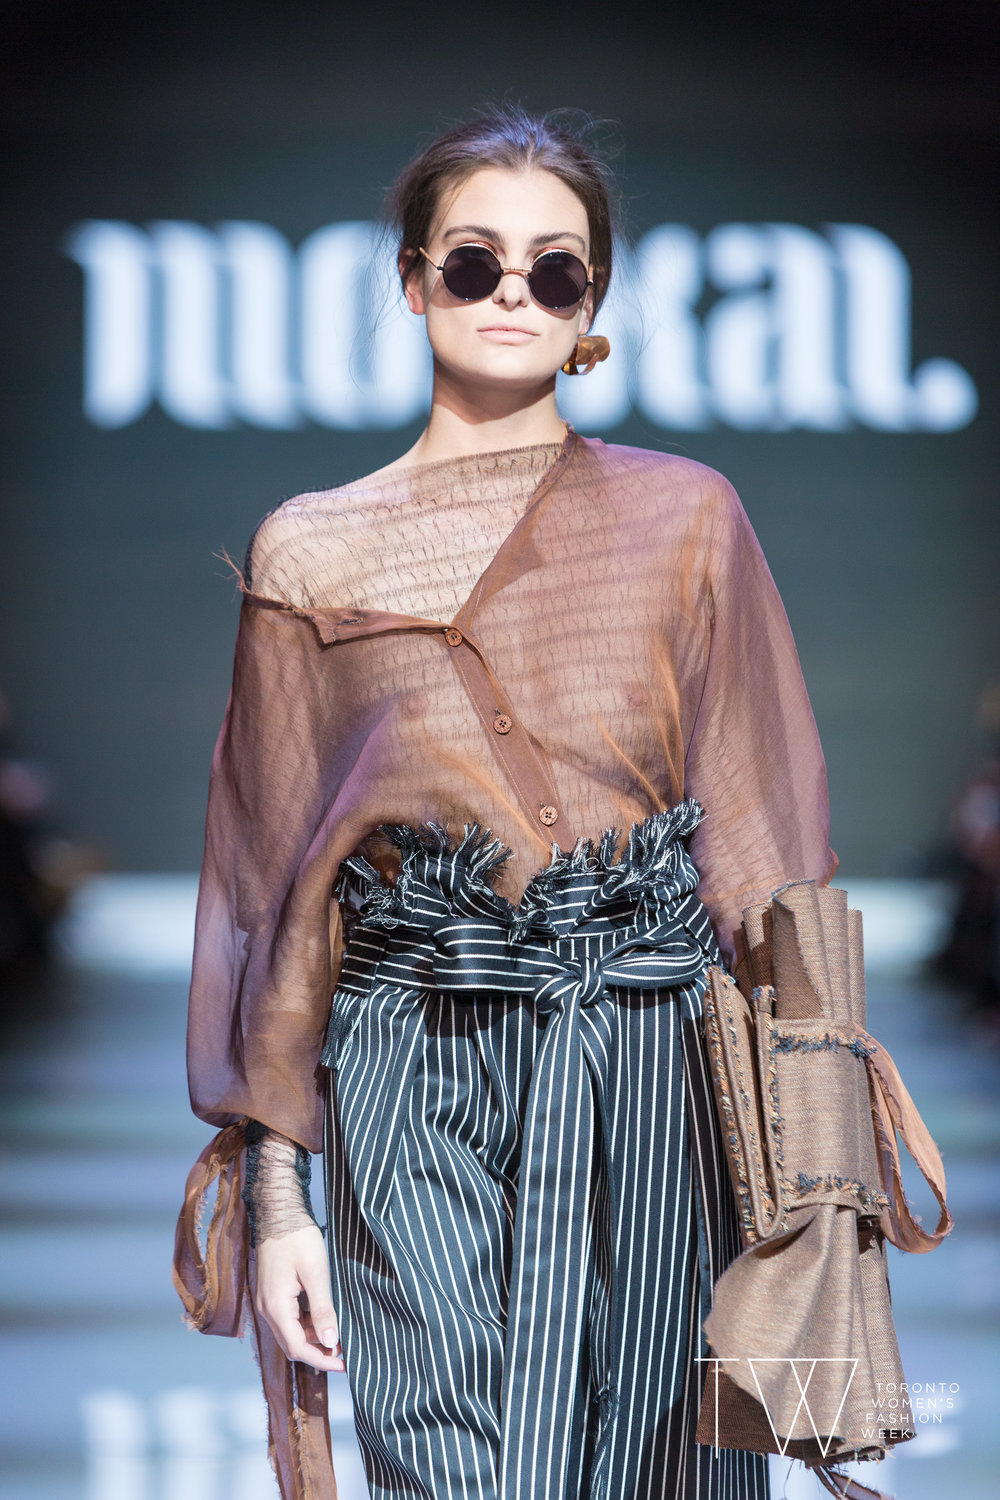 Moskal image courtesy of Toronto Women's Fashion Week